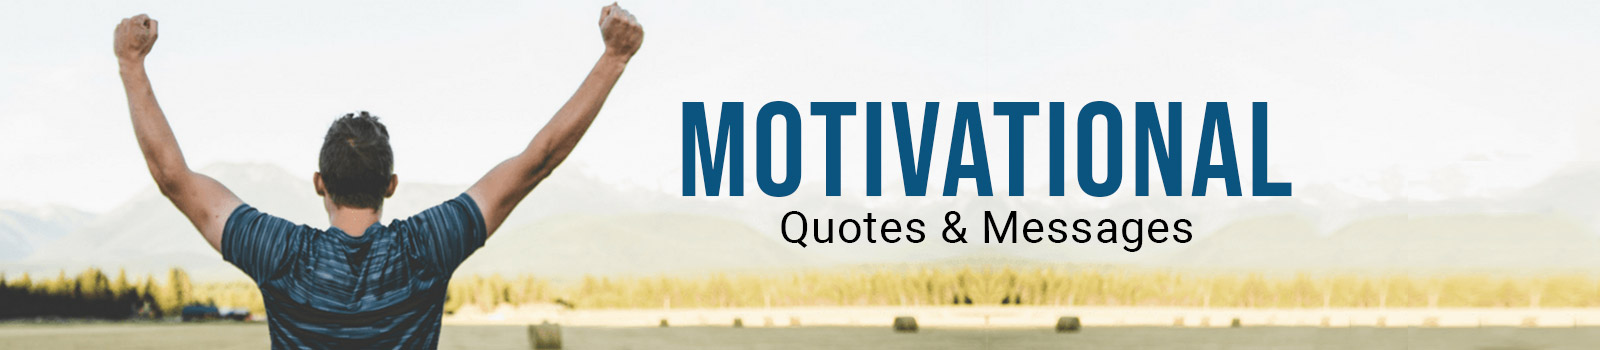 Motivational Life Quotes & Messages